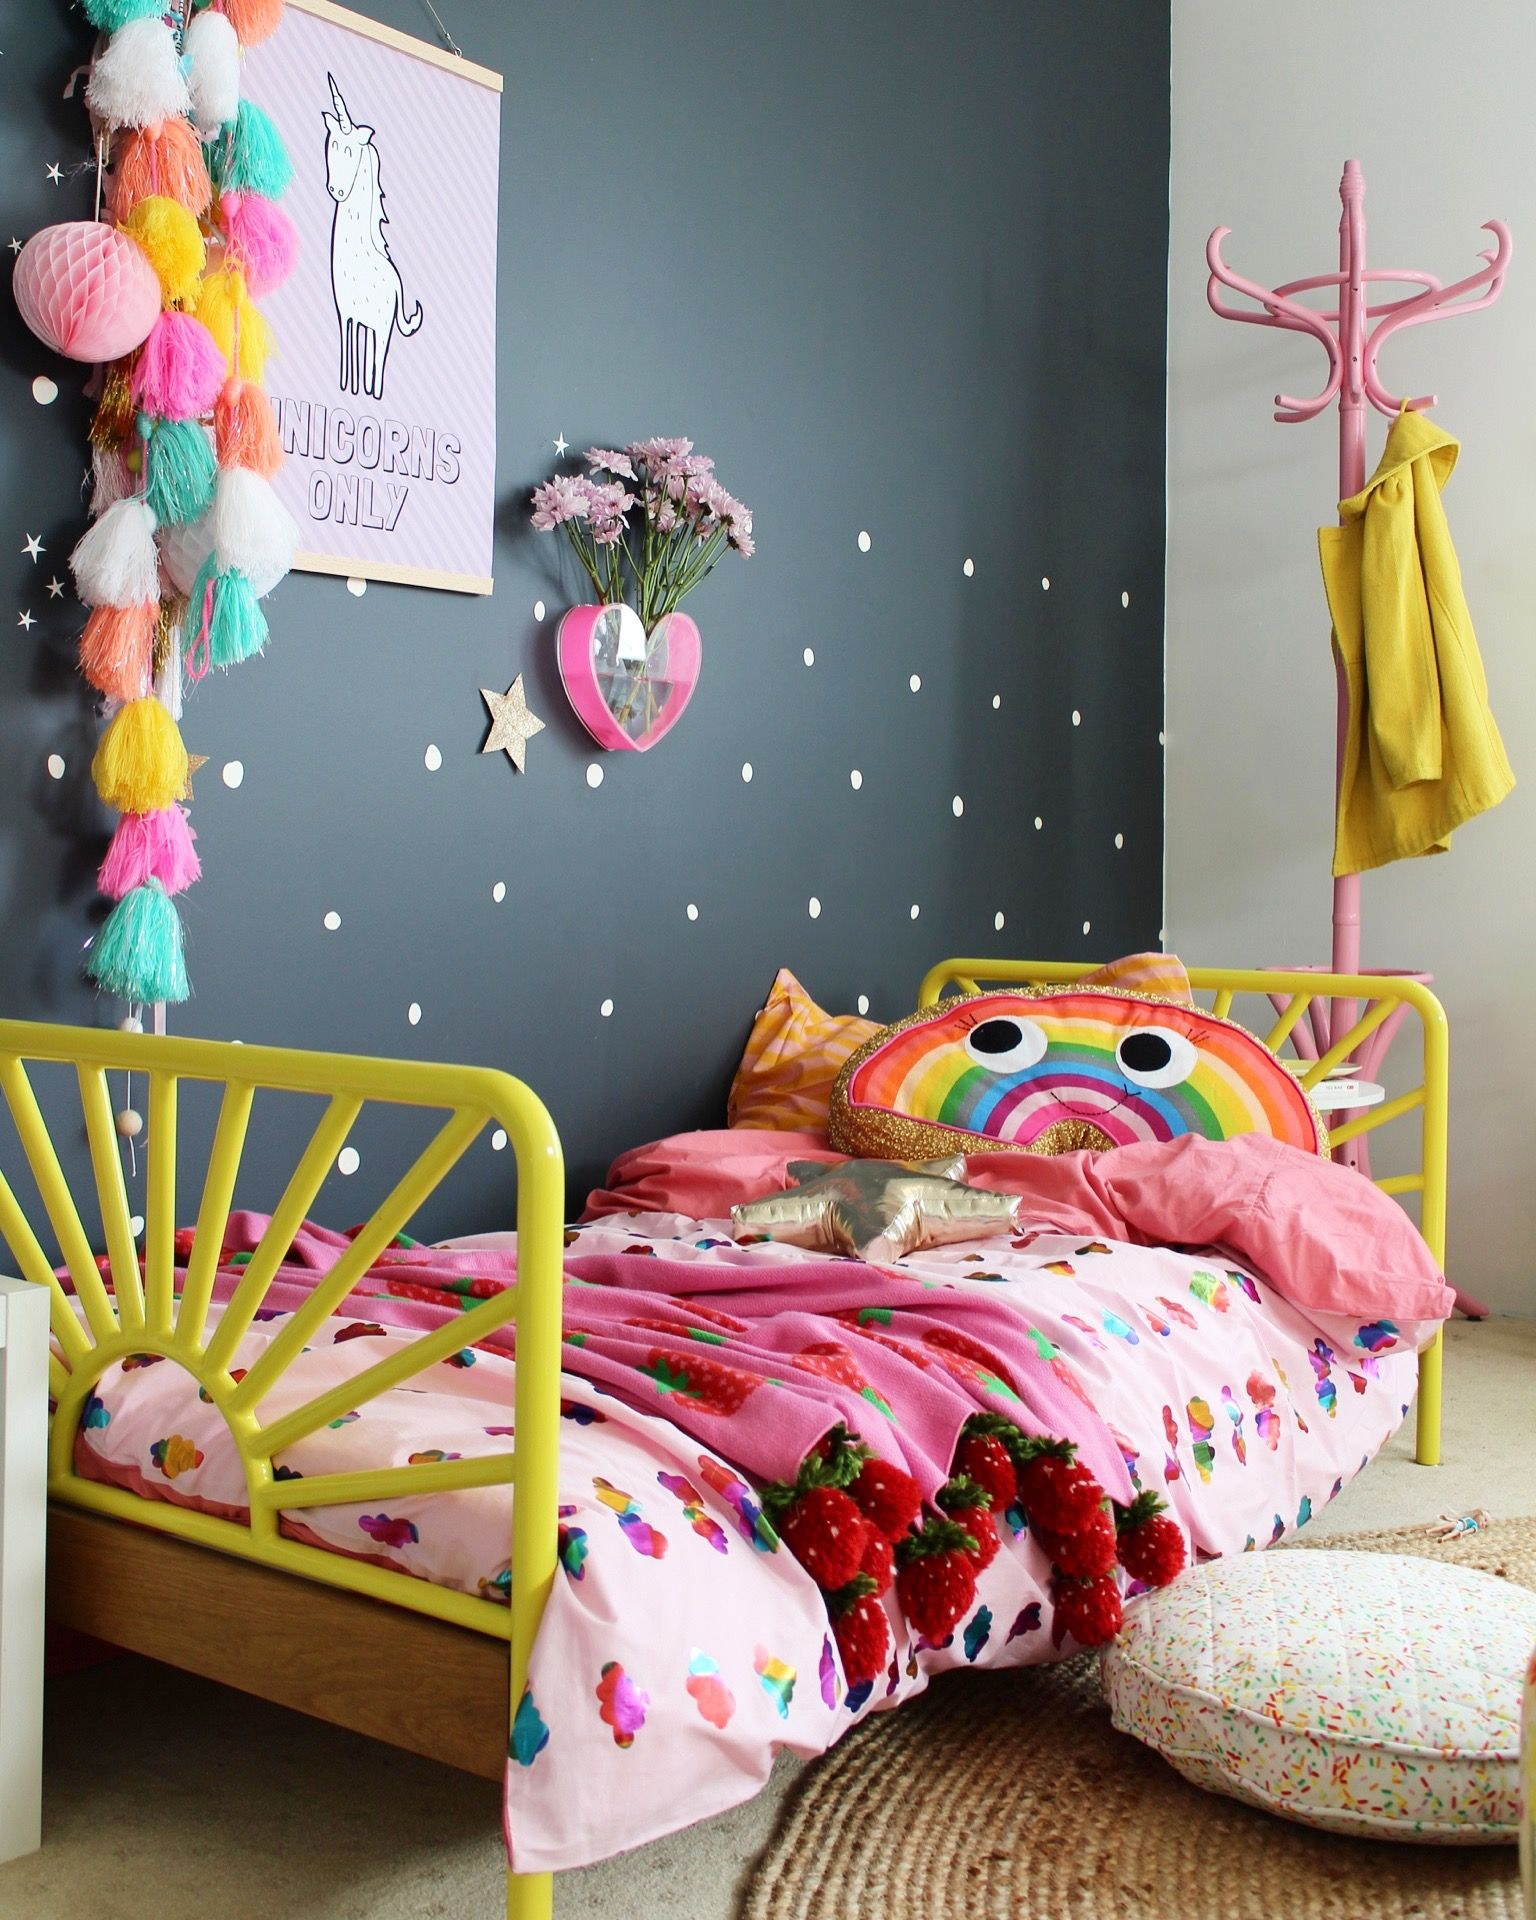 Decoration Den Decoration Ideas Bedroom Decorating: 25+ Amazing Girls Room Decor Ideas For Teenagers